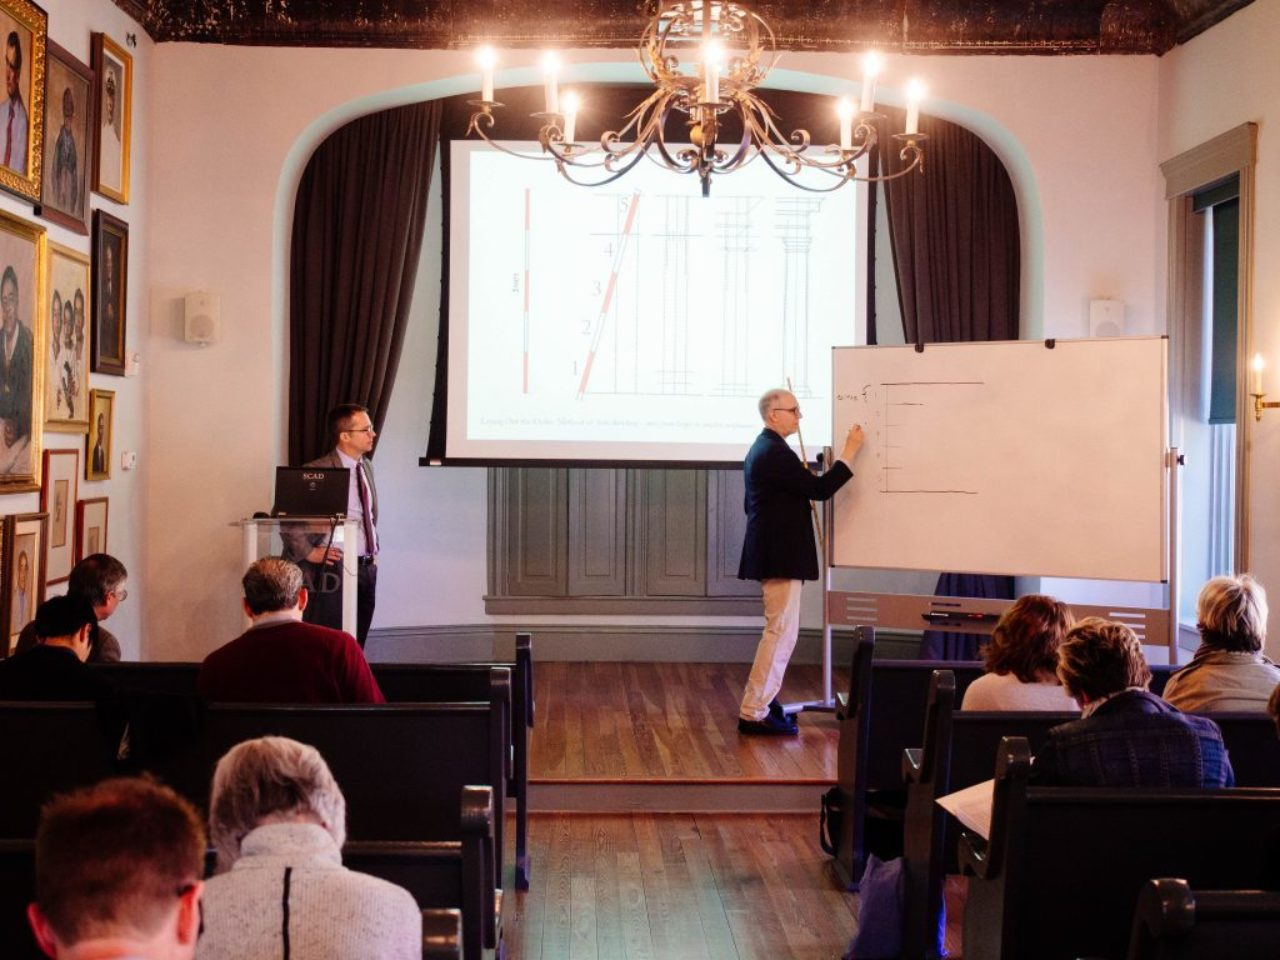 Martin Brandwein draws an example for the Classical Primer lecture